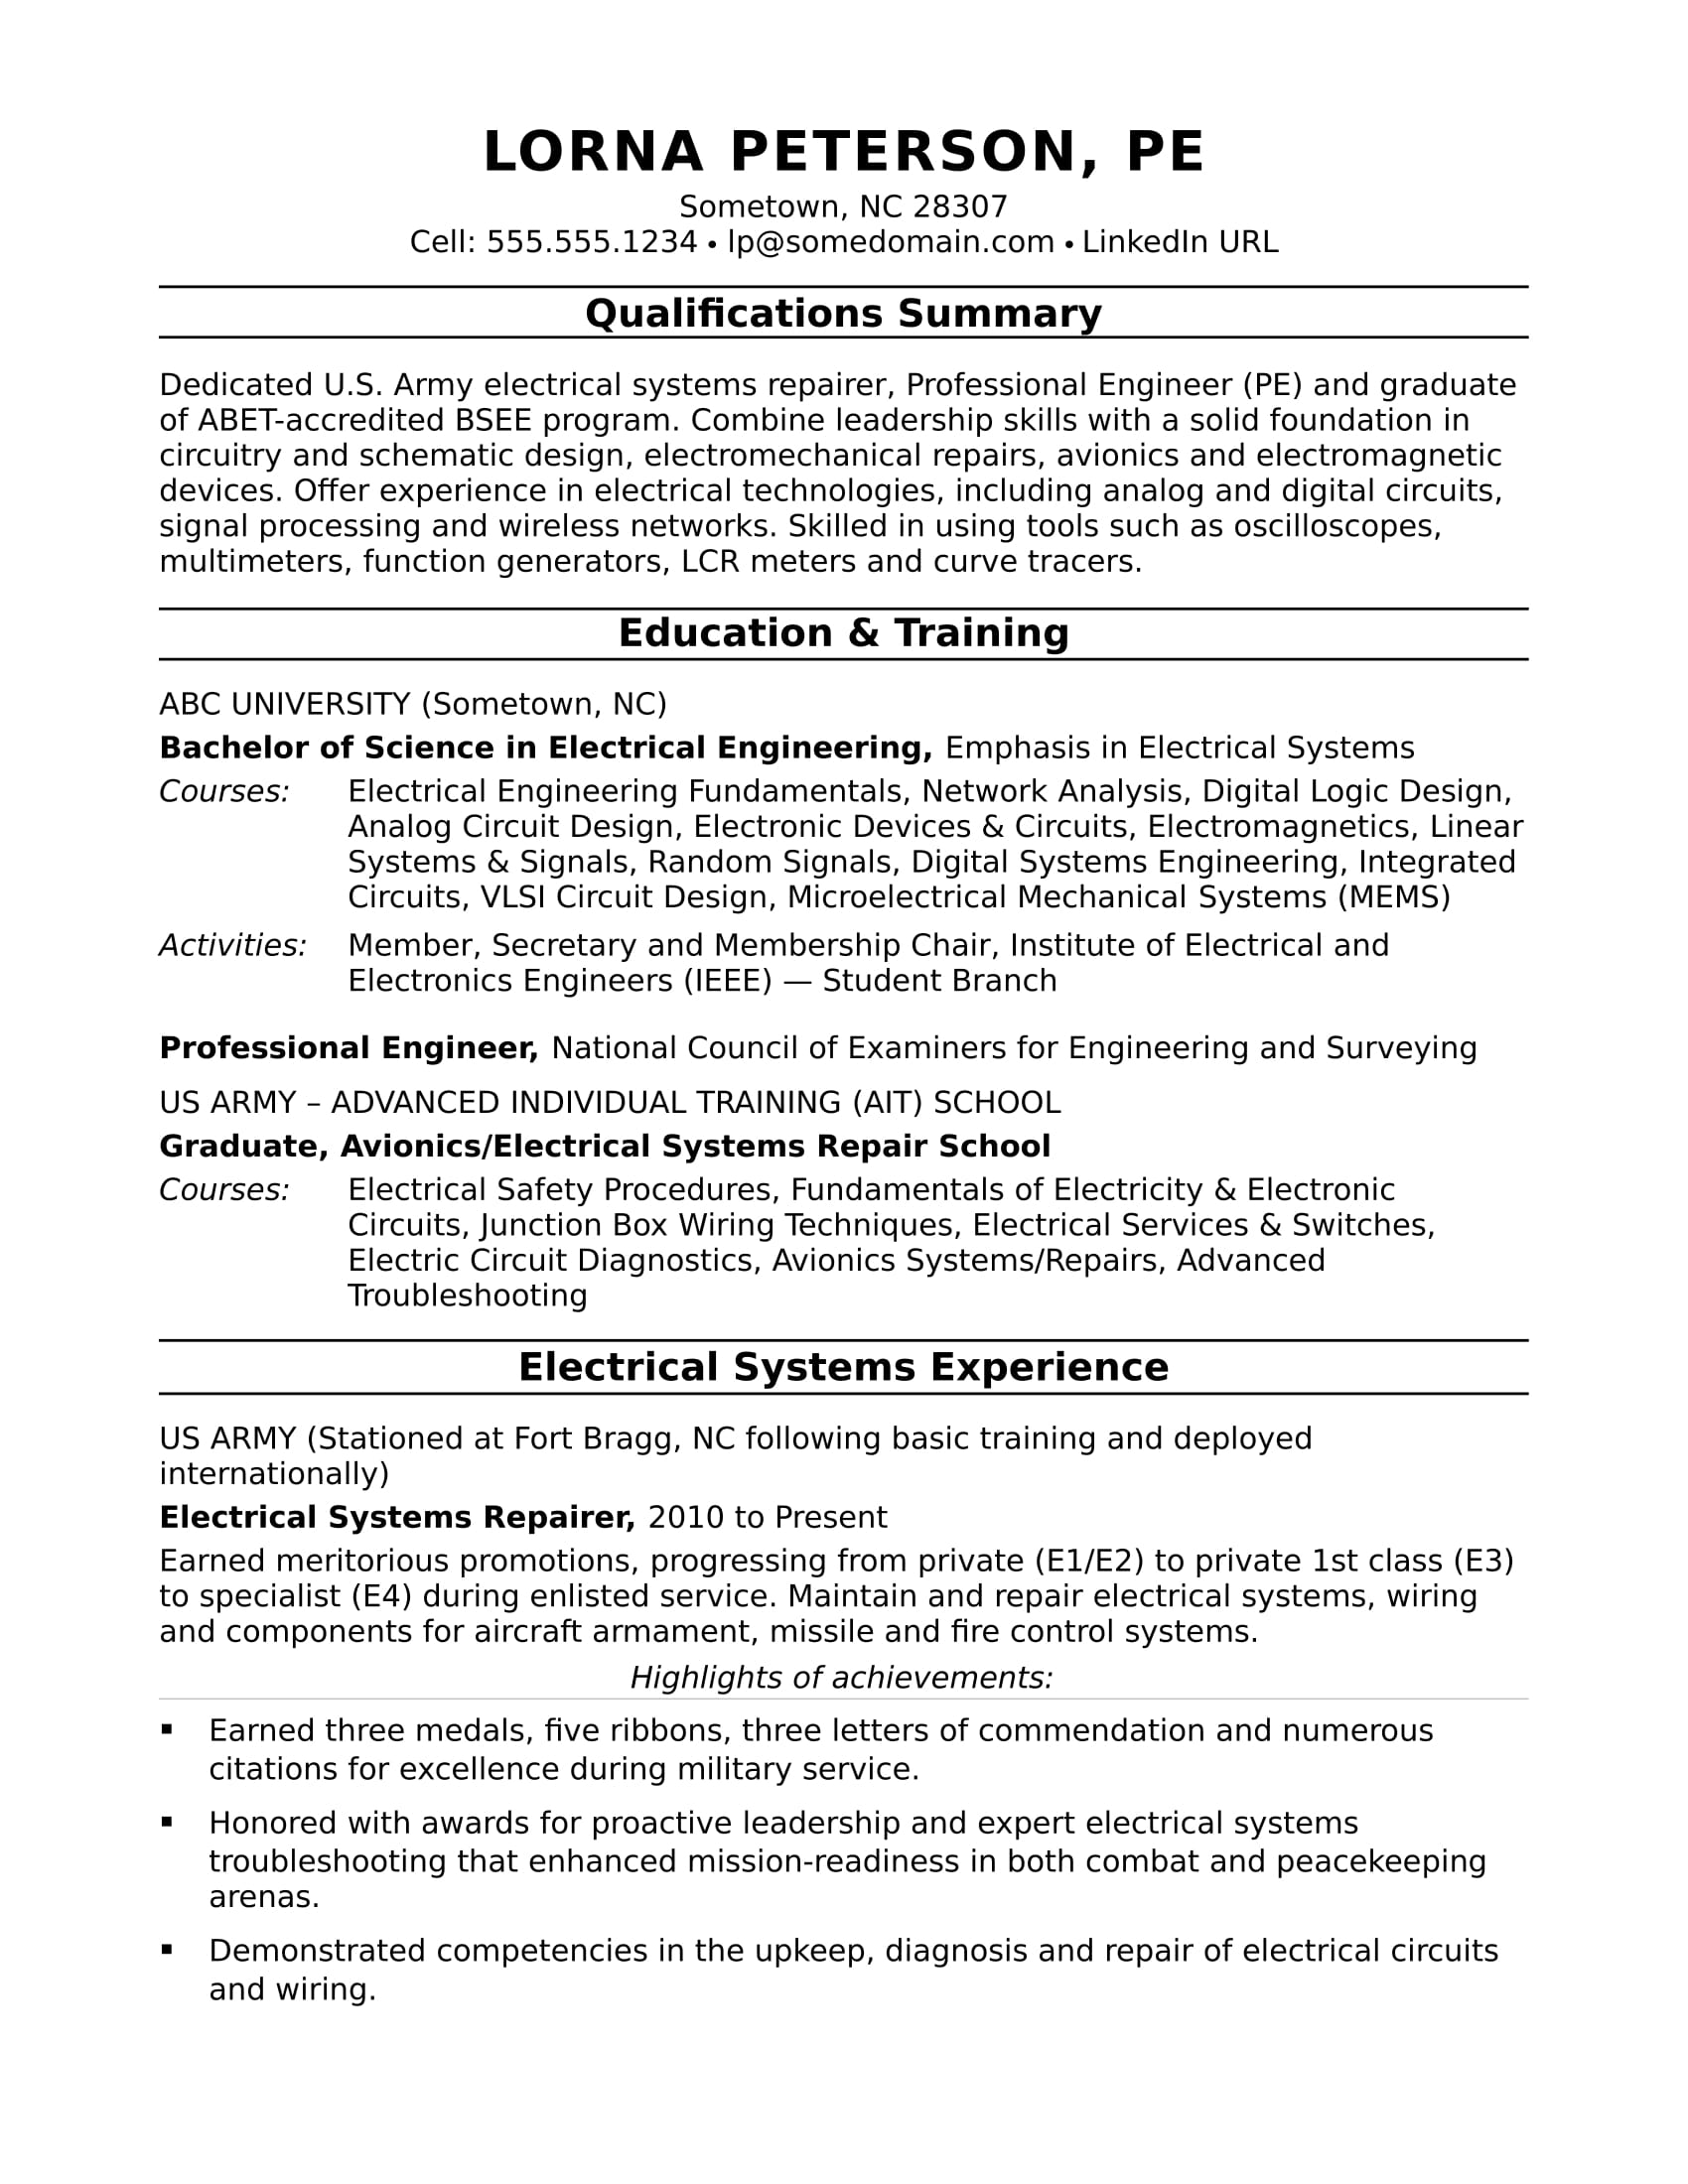 Sample Resume For A Midlevel Electrical Engineer  Engineer Resume Examples